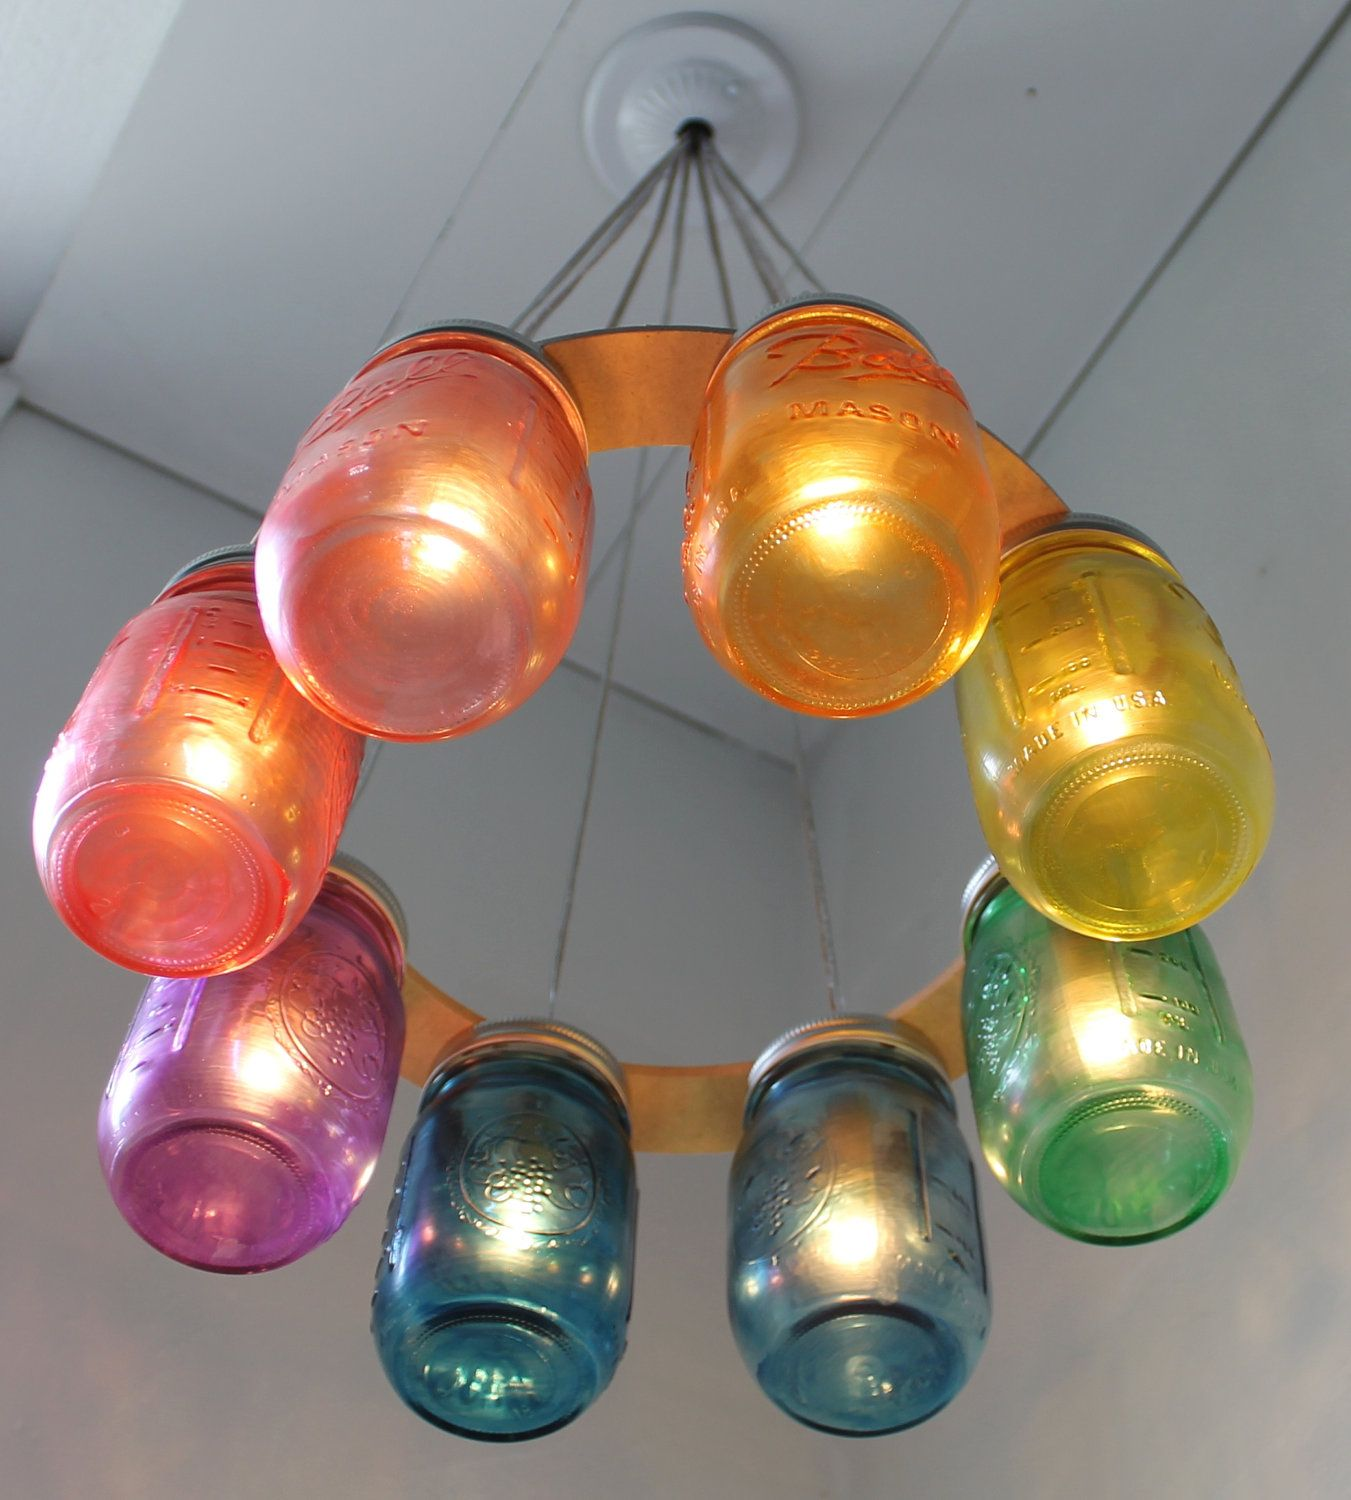 RAINBOW Connection MASON Jar Chandelier - Upcycled Hanging Mason Jar Lighting Fixture Direct Hardwire - BootsNGus Lamps Rustic Home Decor. $215.00, via Etsy.